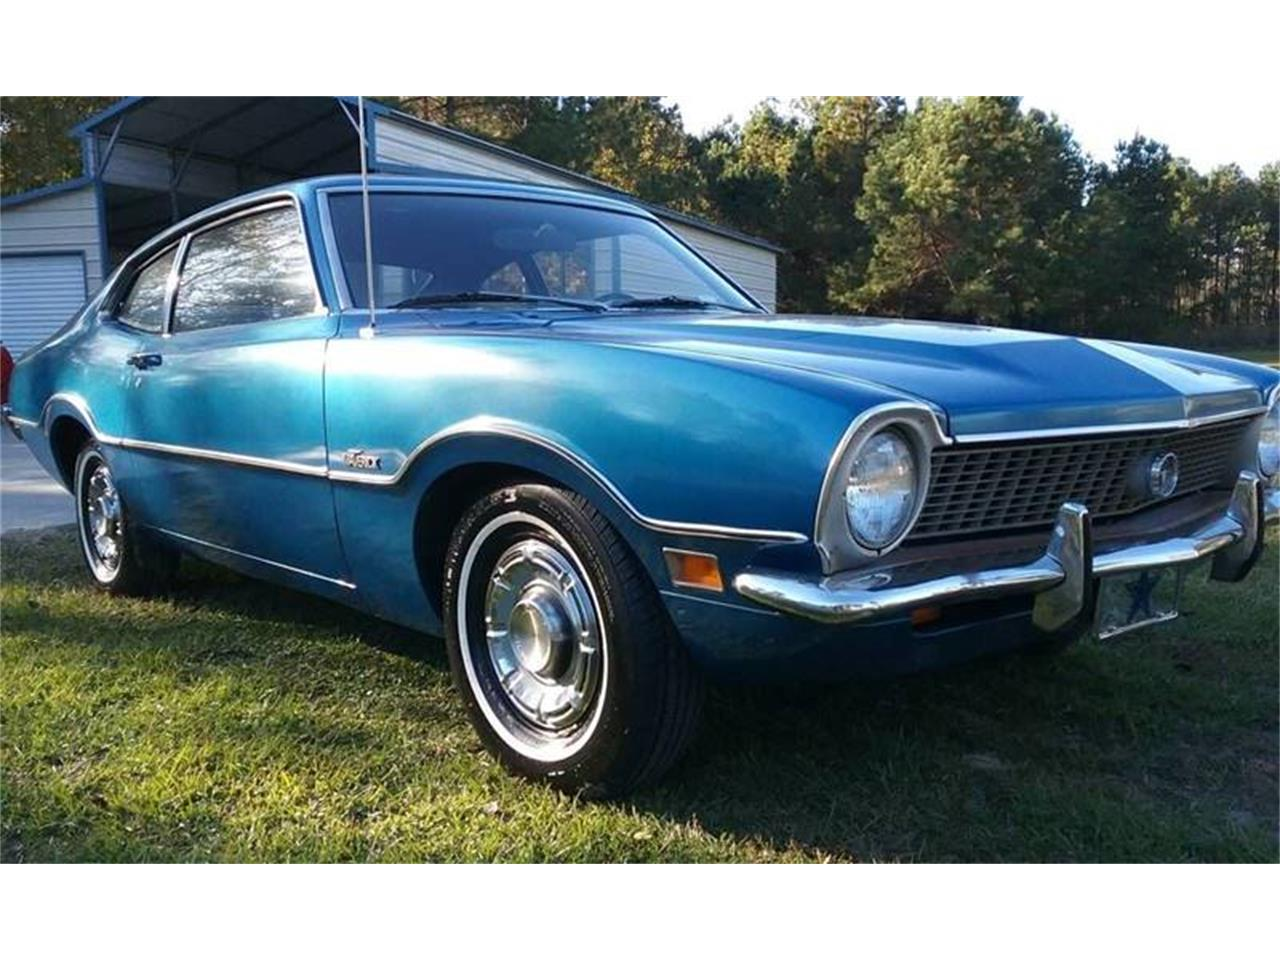 Ford Maverick For Sale >> For Sale 1972 Ford Maverick In Long Island New York